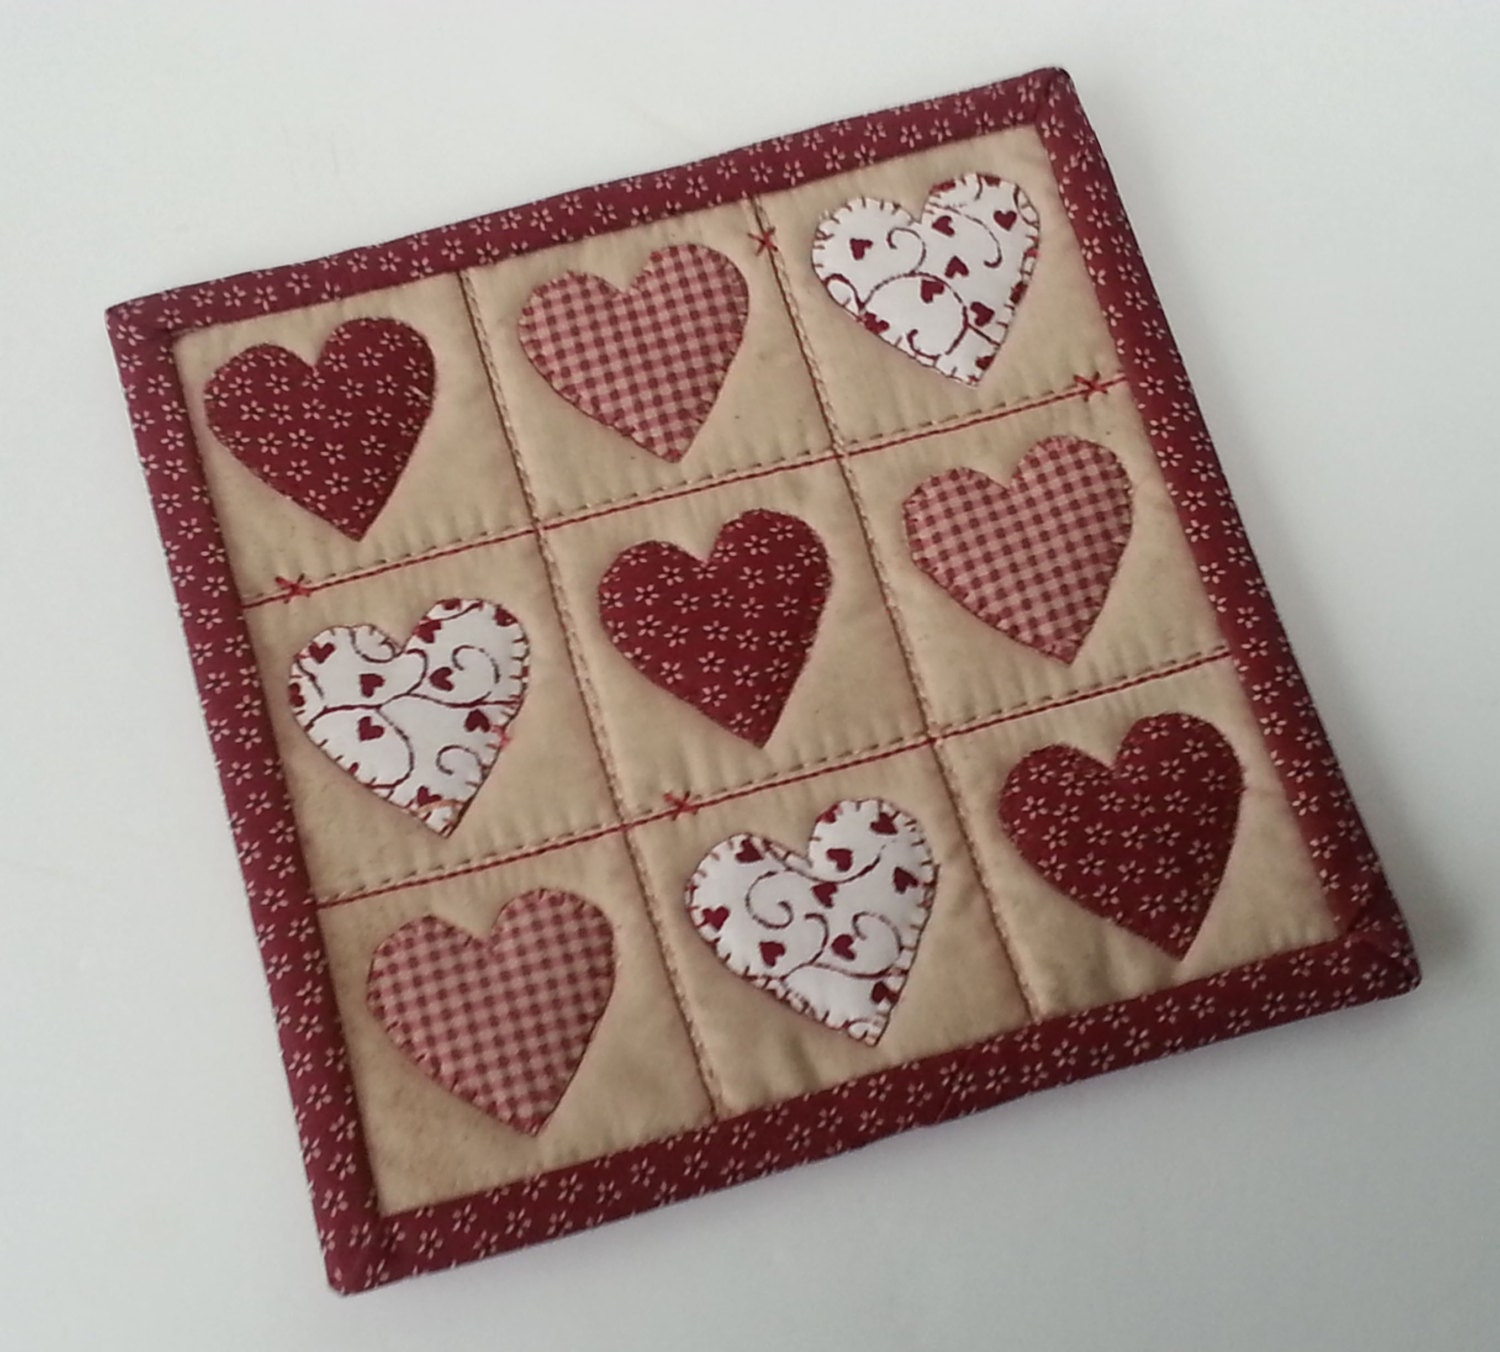 MUG RUG PATTERN Hearts And Stitches Mug Rug Pattern Valentine